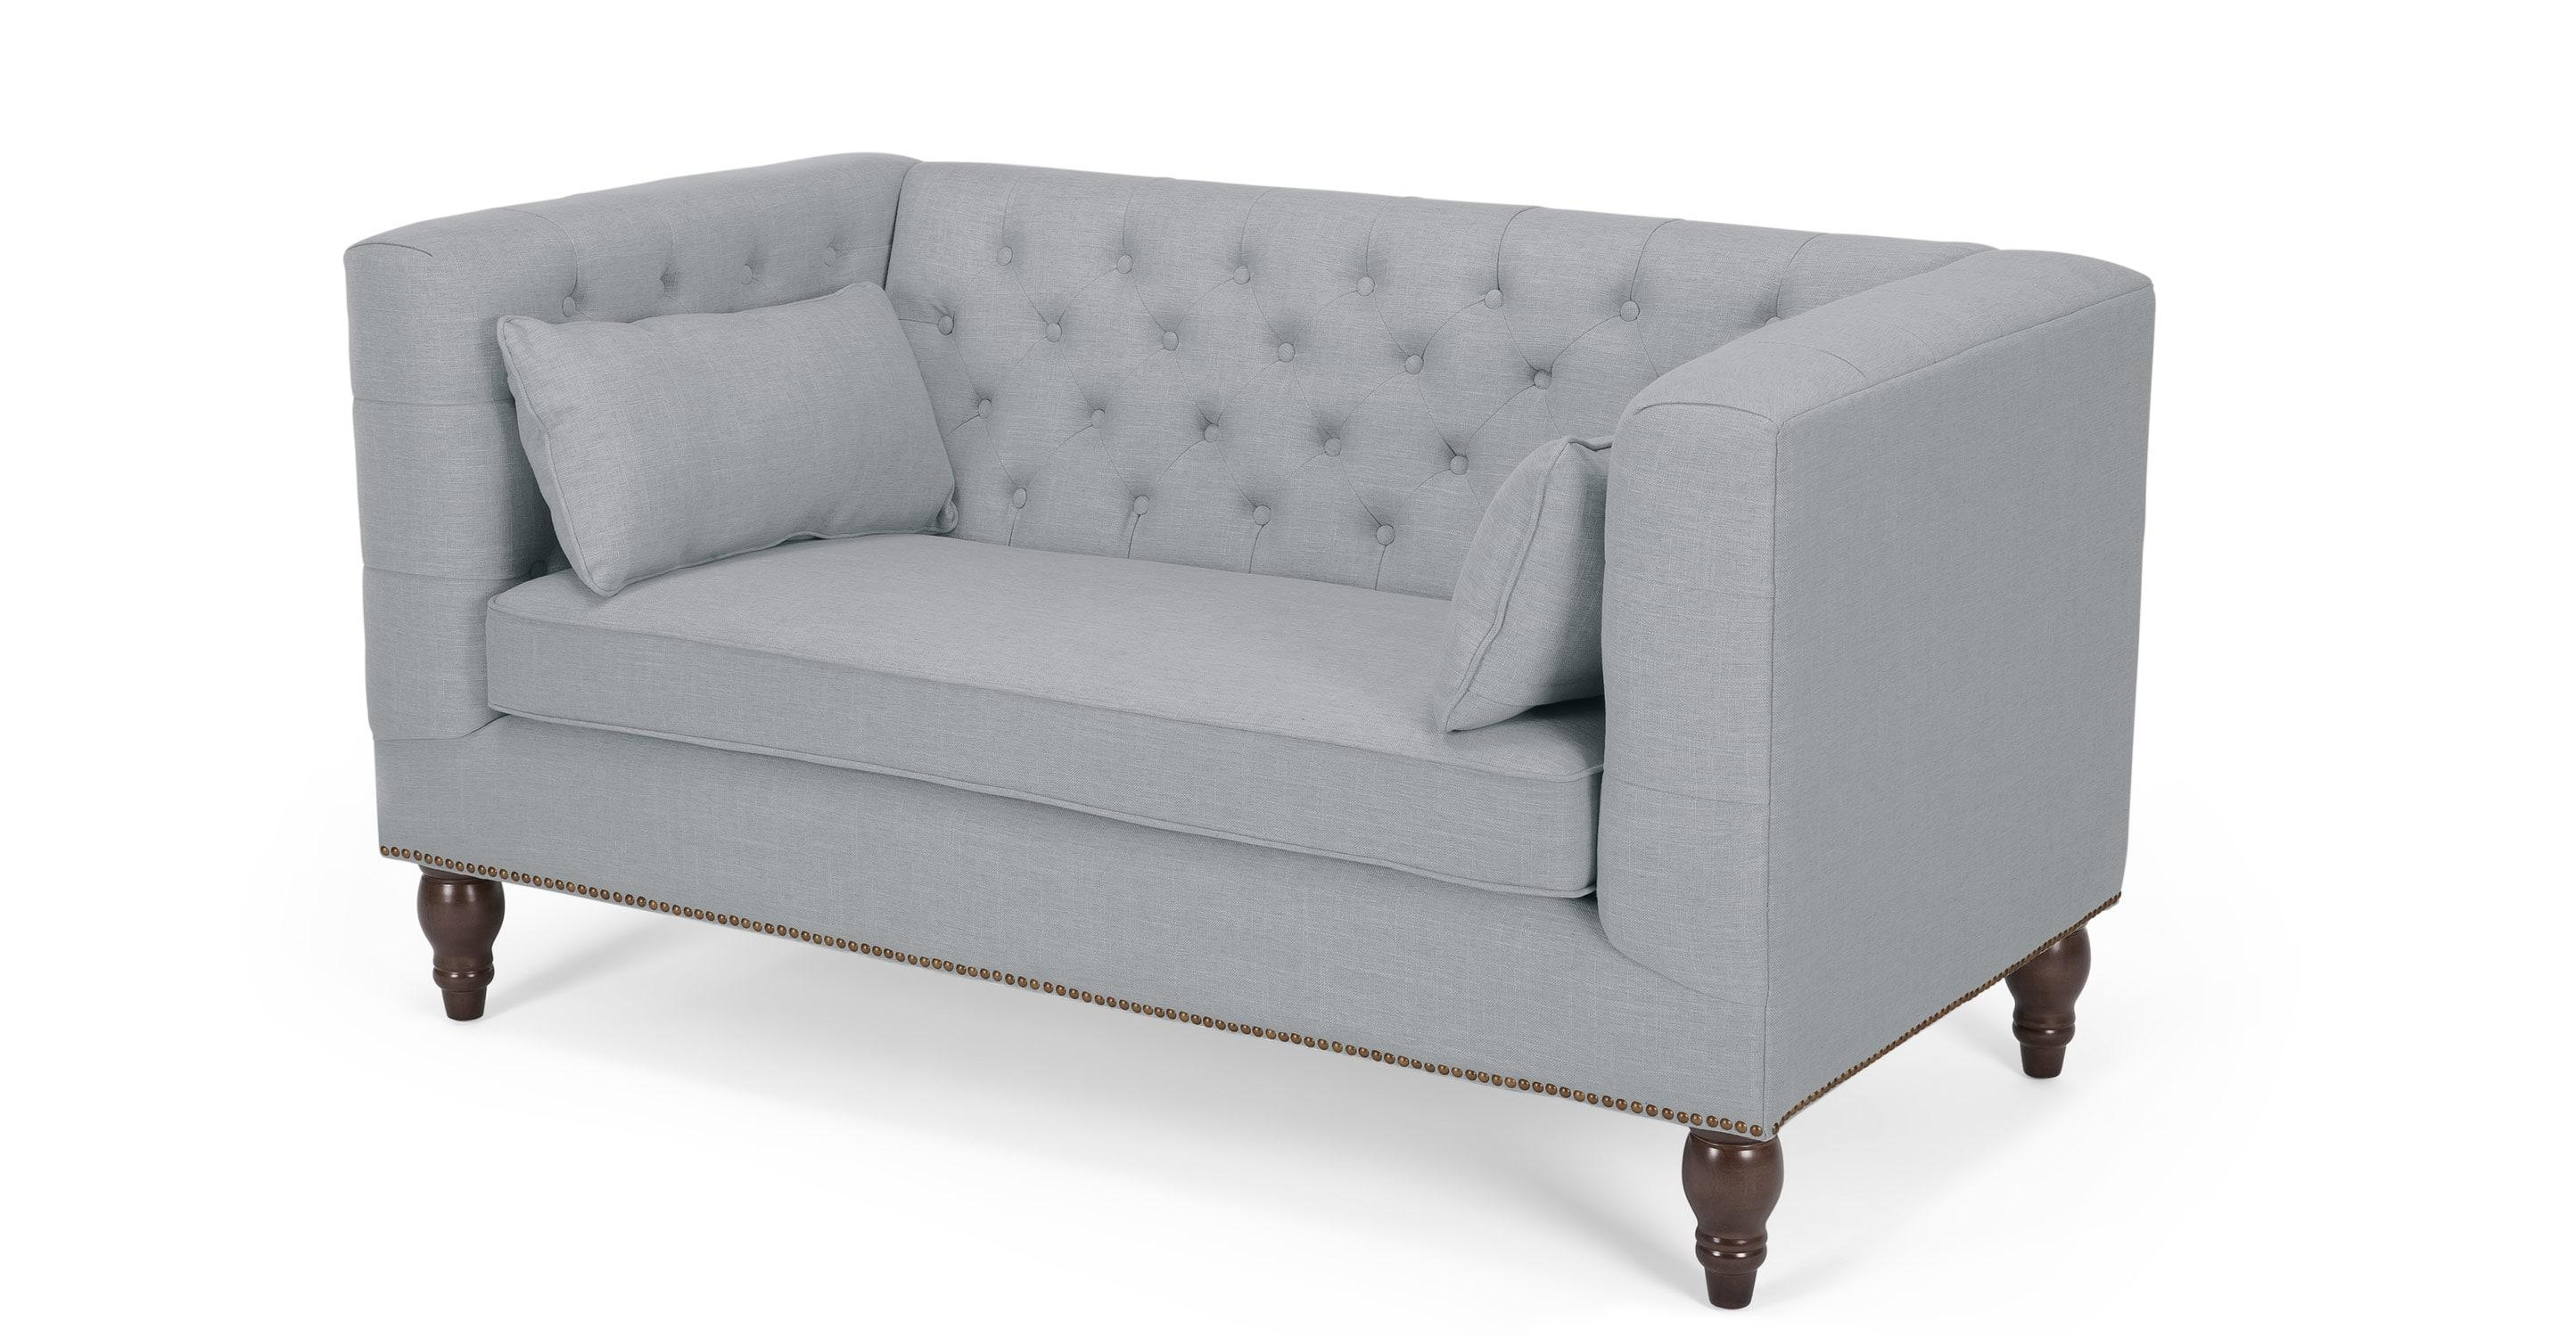 Sofas Center : Seater Sofa Sofas Uk With Chaise Legs Covers2 For Small 2 Seater Sofas (View 13 of 20)